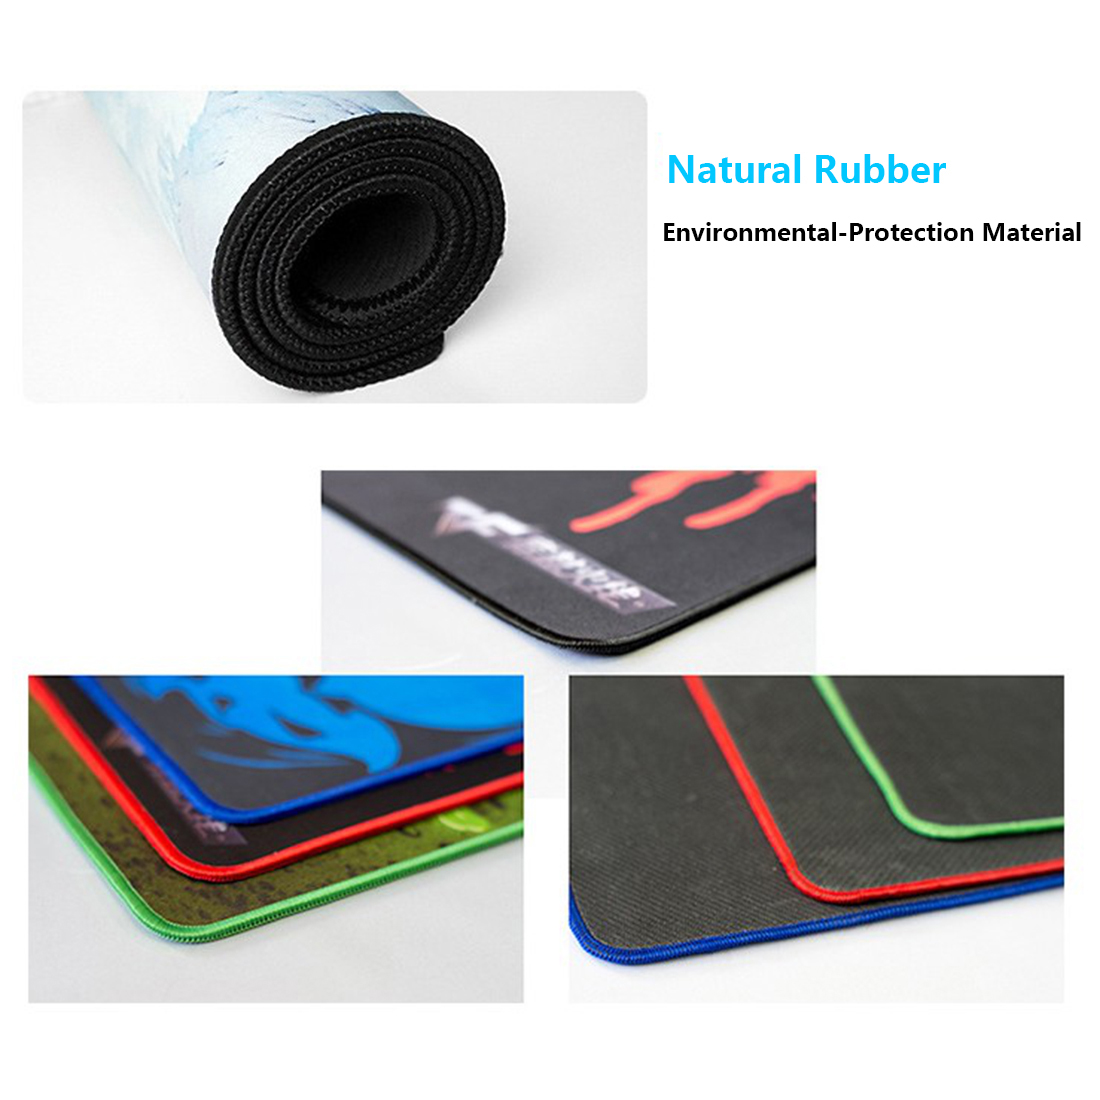 RGB Luminous Gaming Mouse Pad Colorful Oversized Desk Mat for Mechanical Keyboard Mouse - Wandering Earth